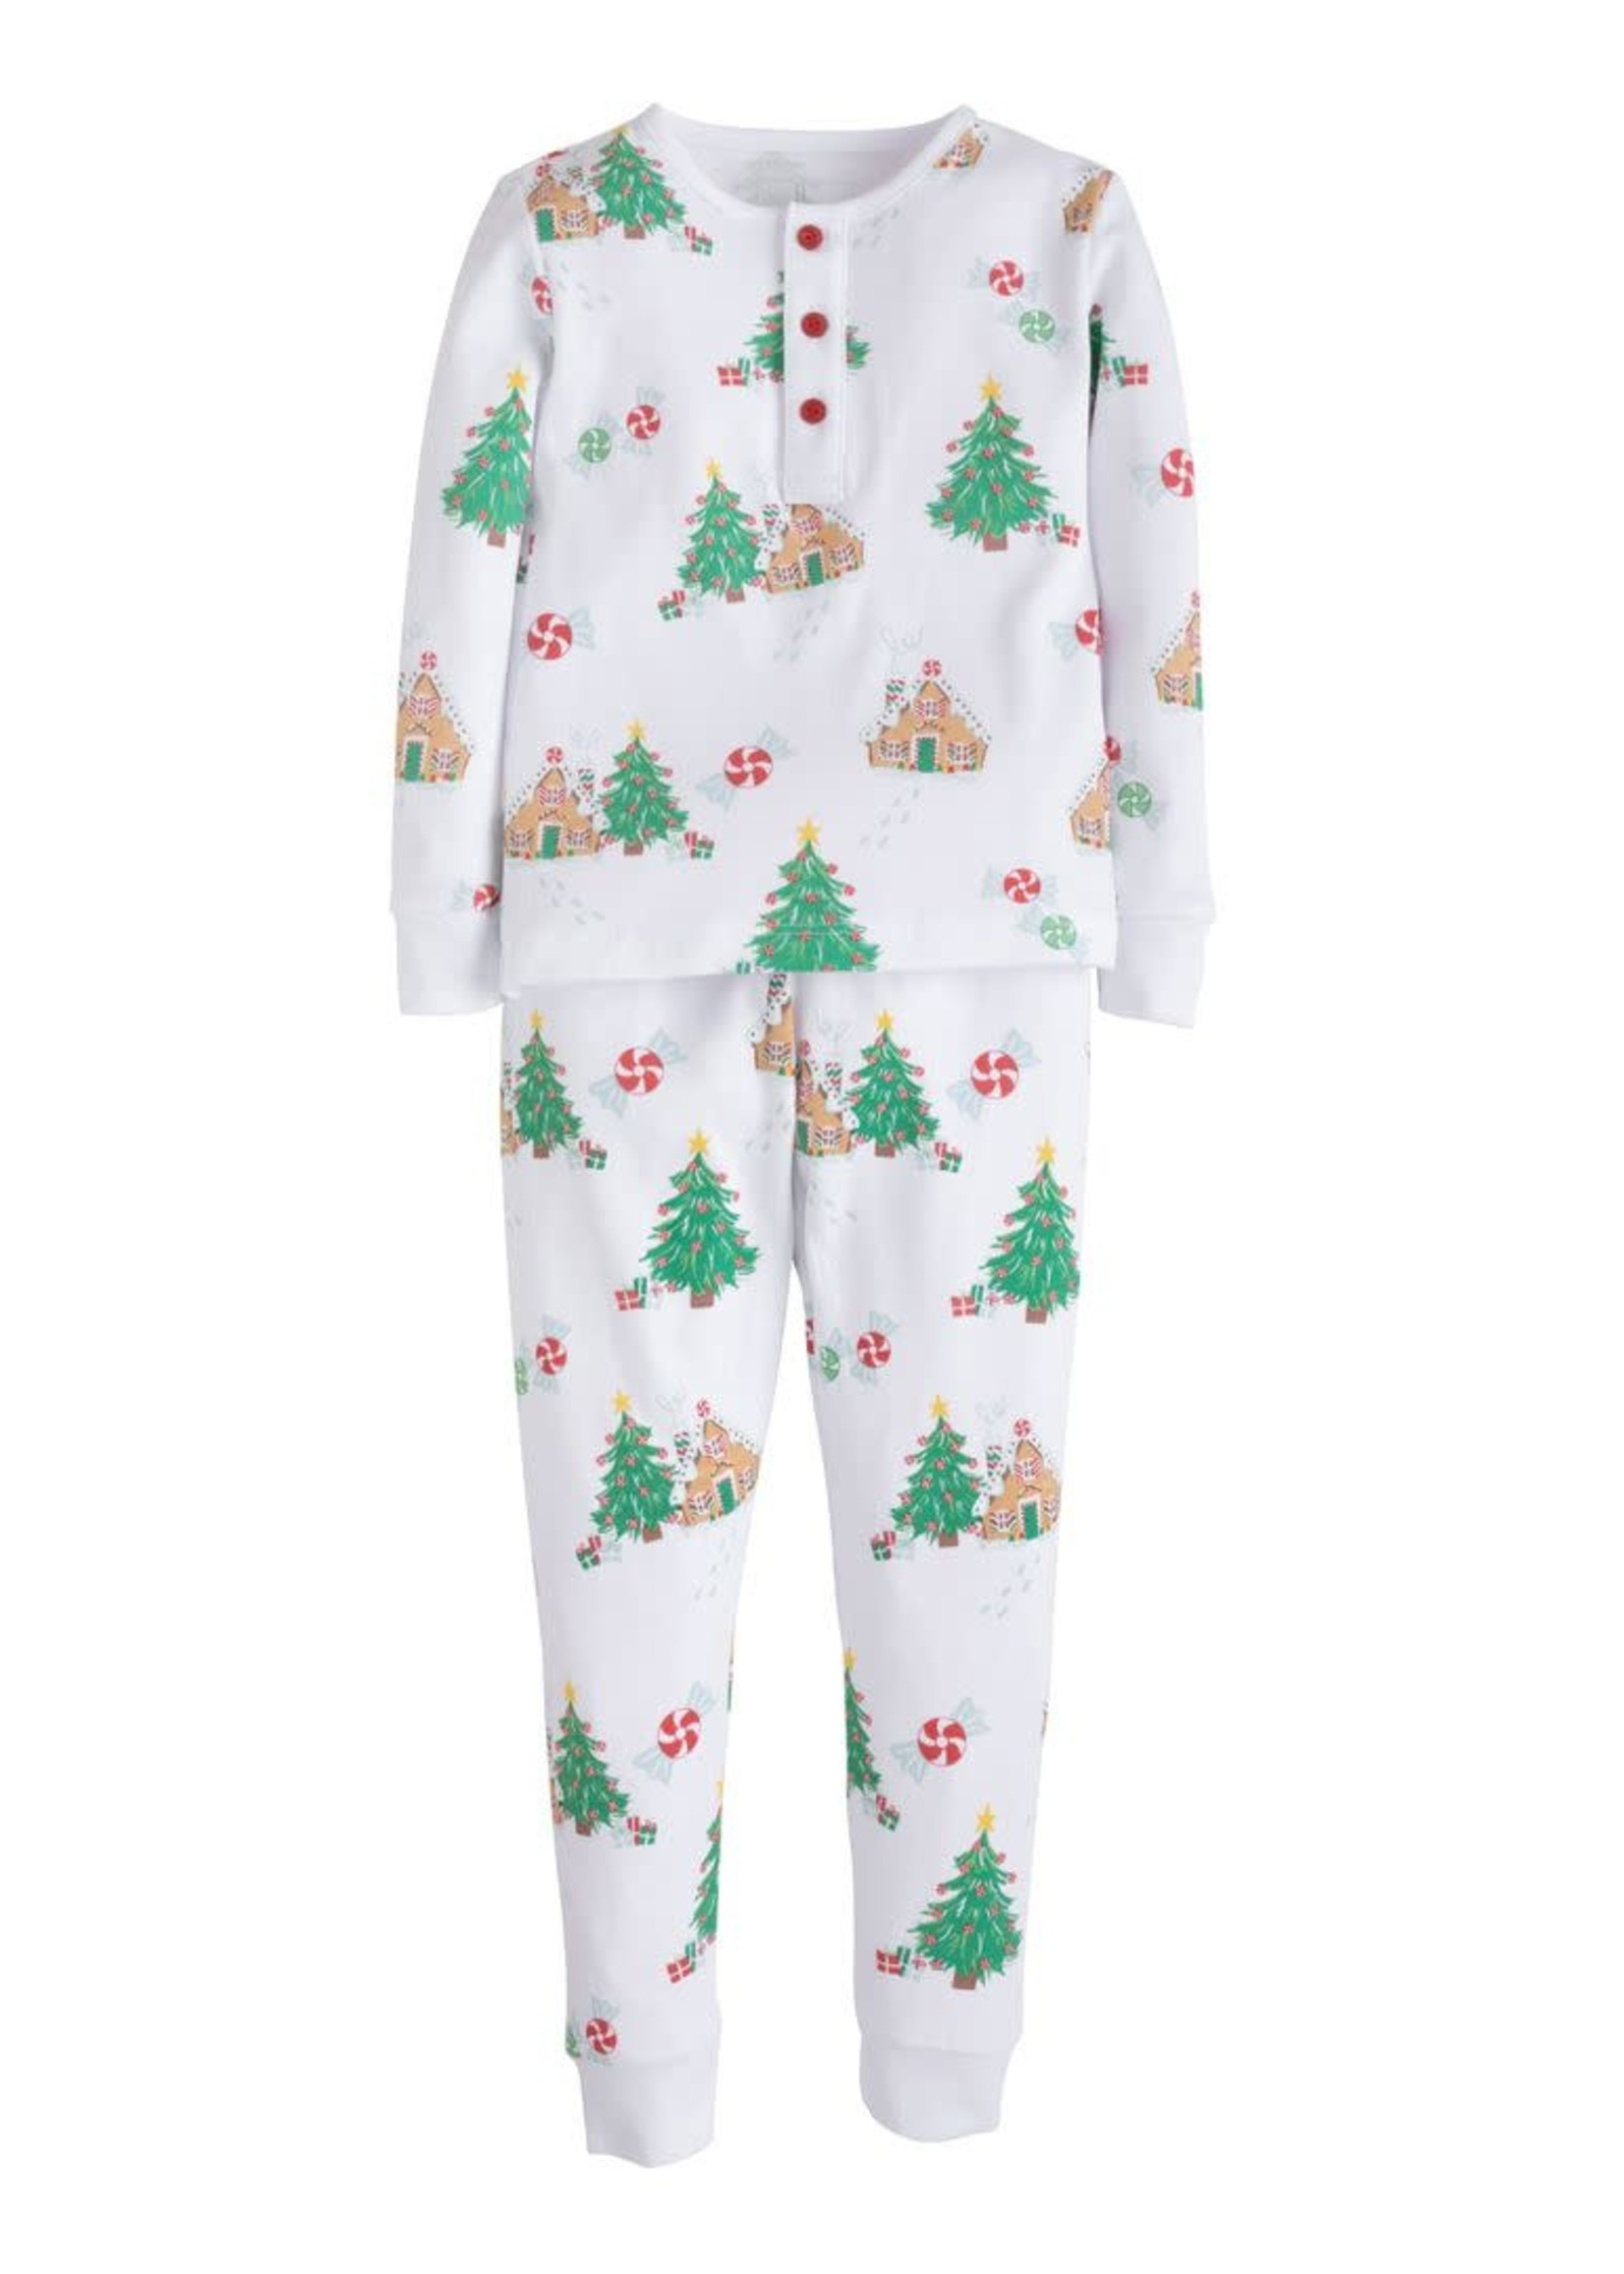 Little English Printed Jammies - Gingerbread